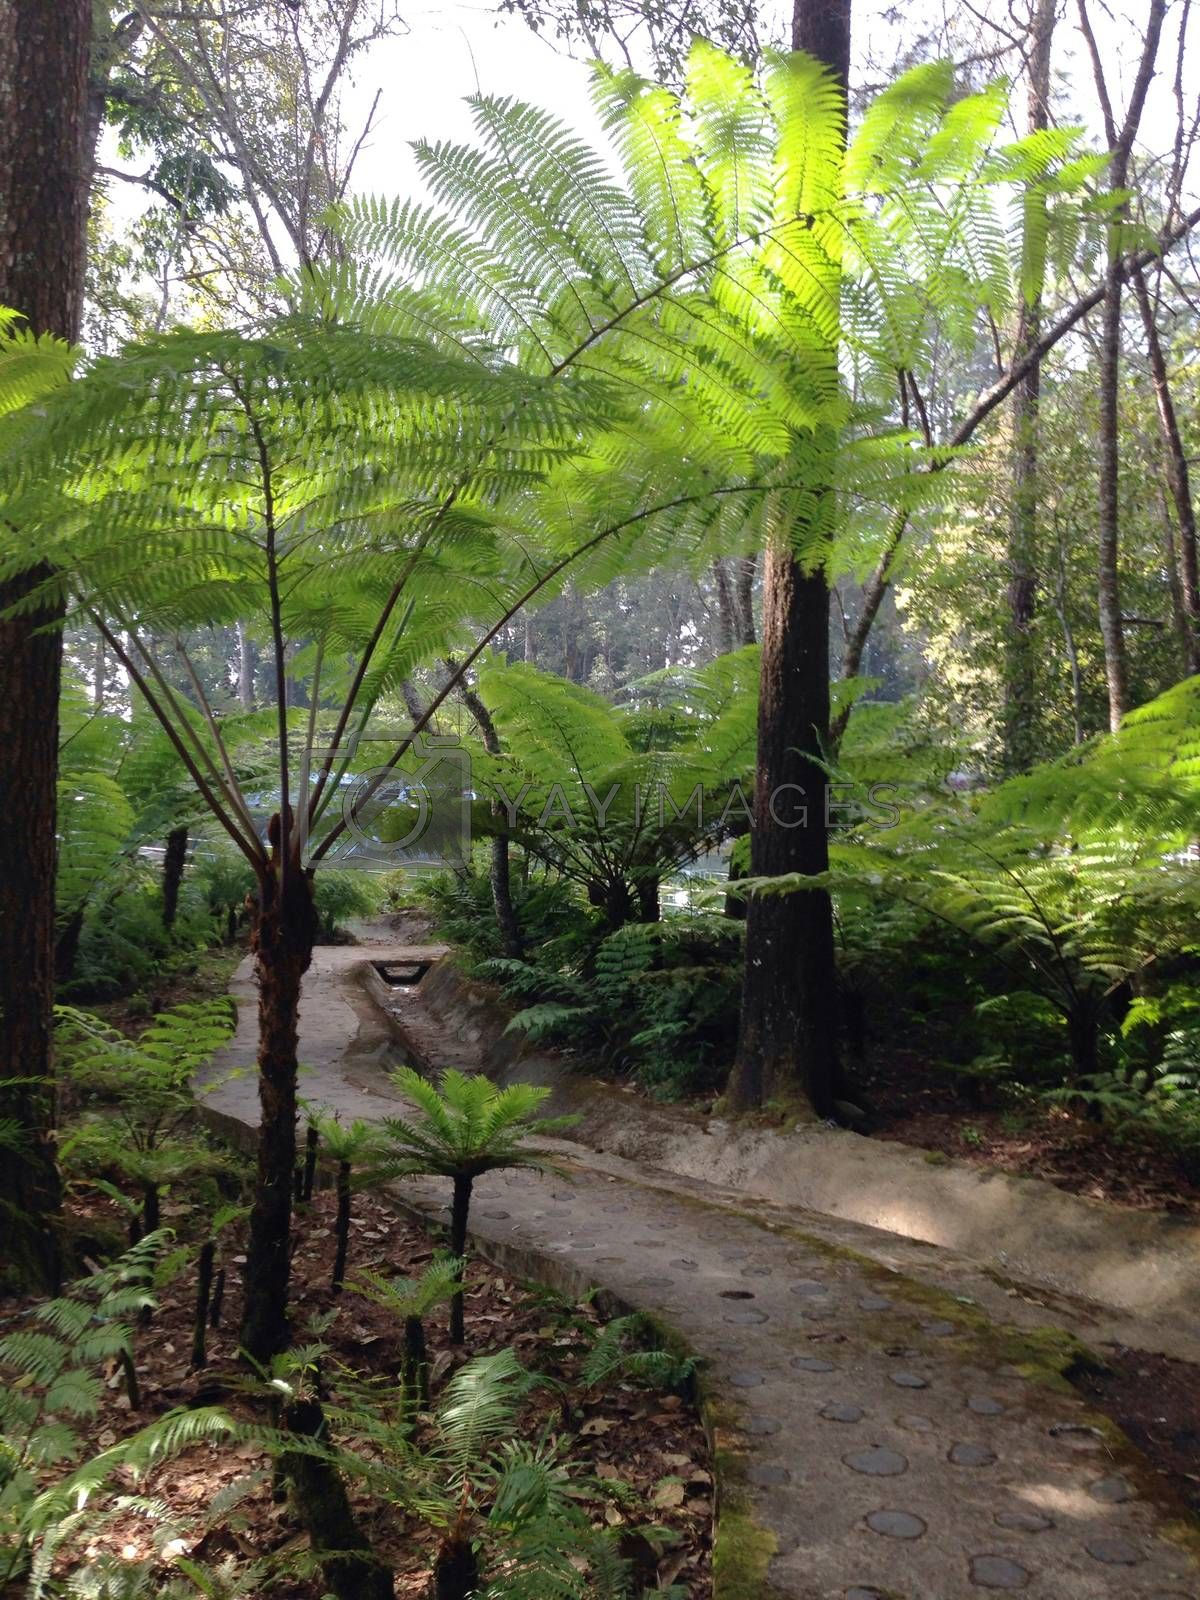 Royalty free image of the fern trees in a park , Thailand by pandara